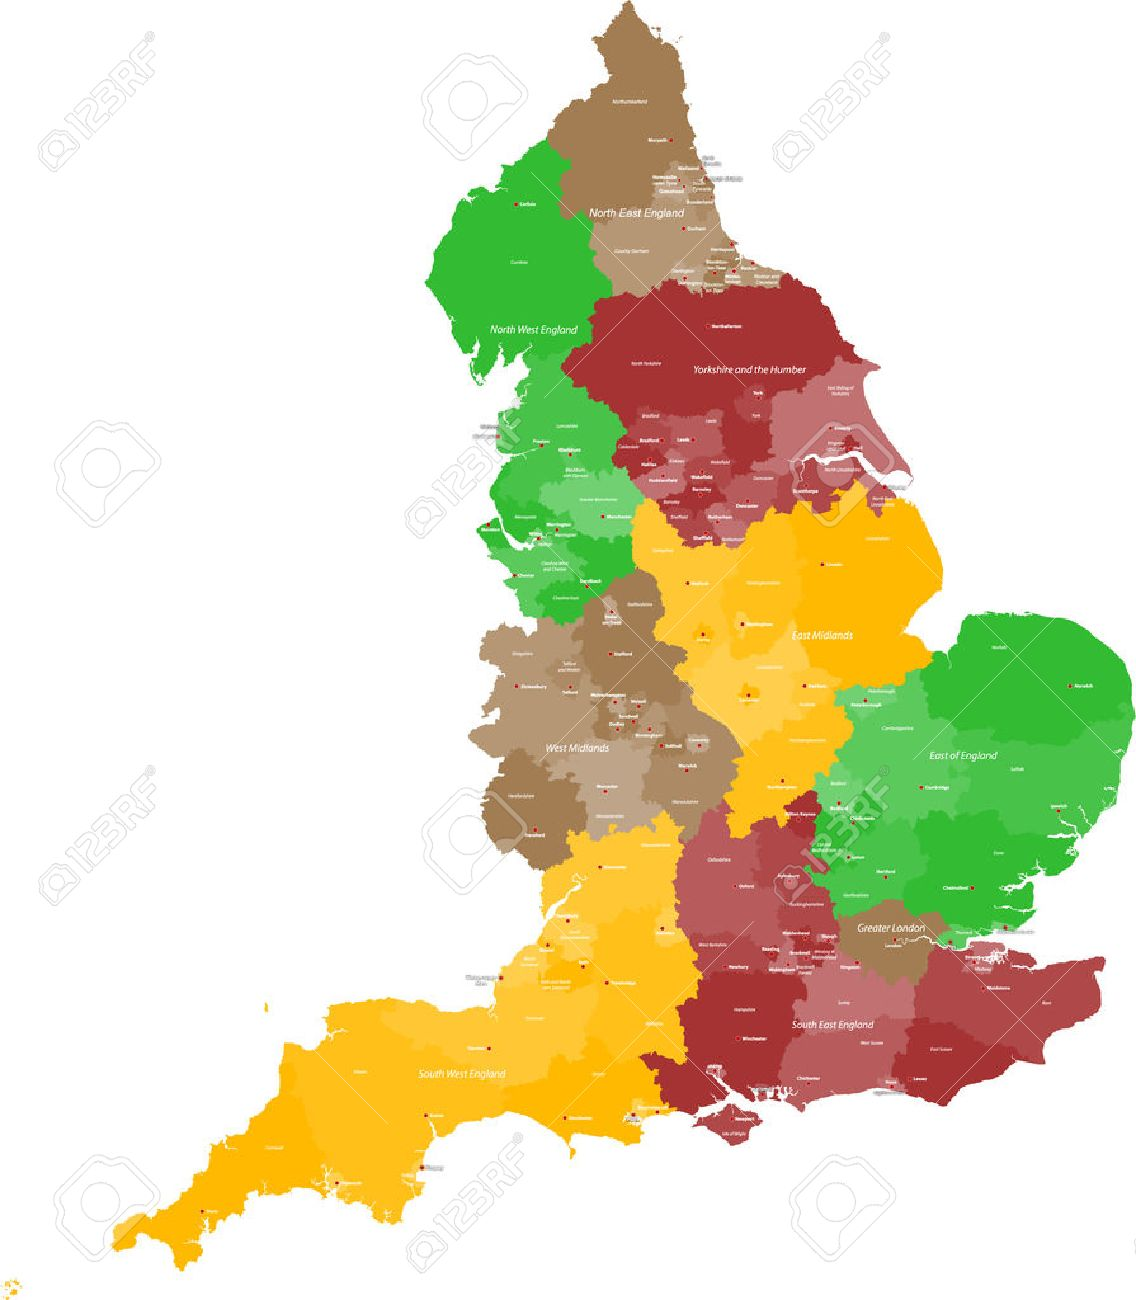 Map Of England With Counties And Major Cities.A Large Detailed And Colored Map Of England With All Counties